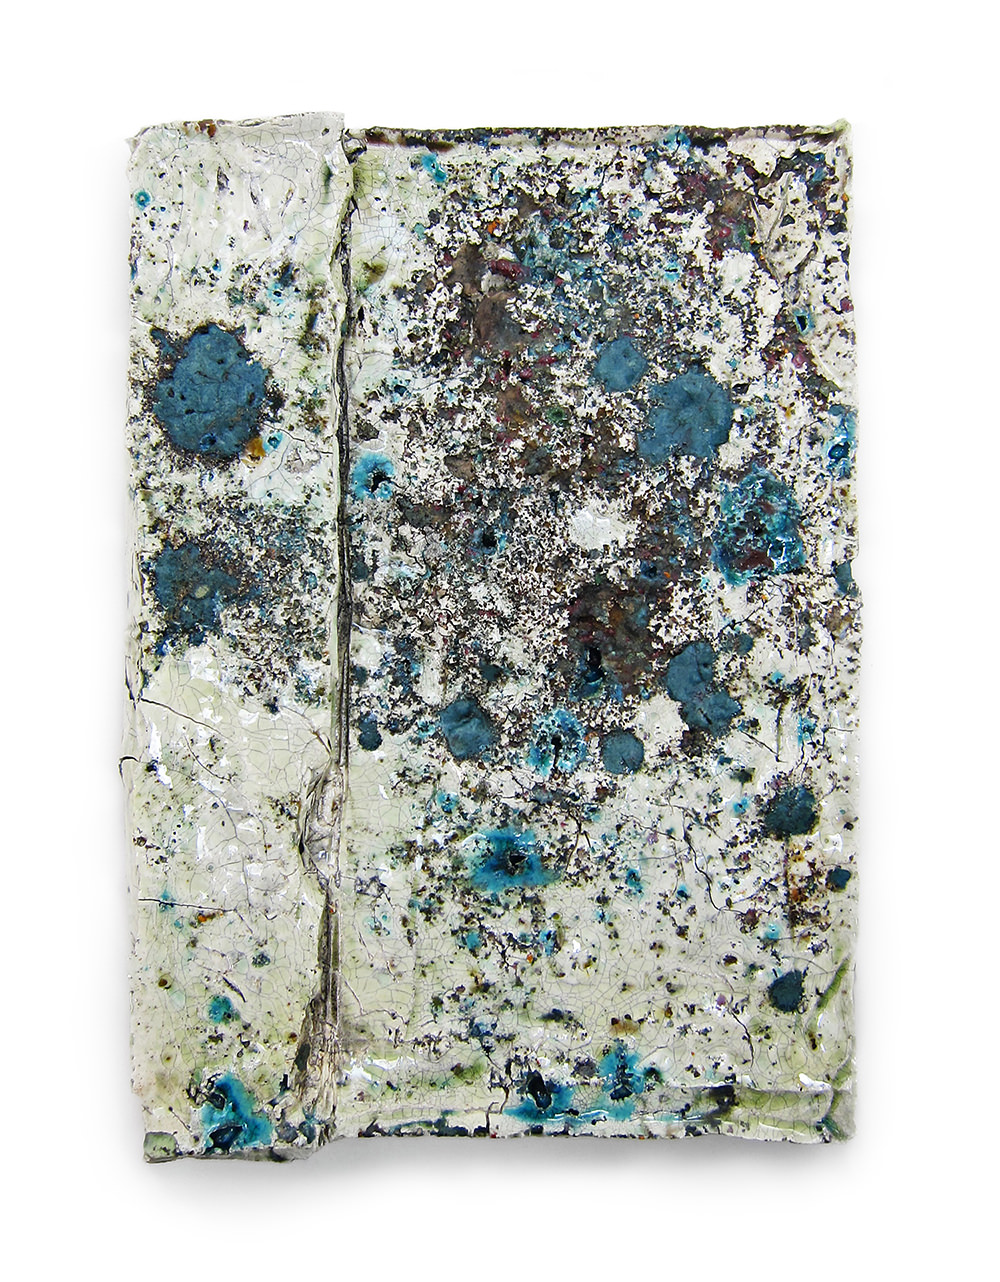 "<em>Reclaim Slab No.11</em> <span style=""color:#CC0000;font-size:1.5em;"">•</span>"